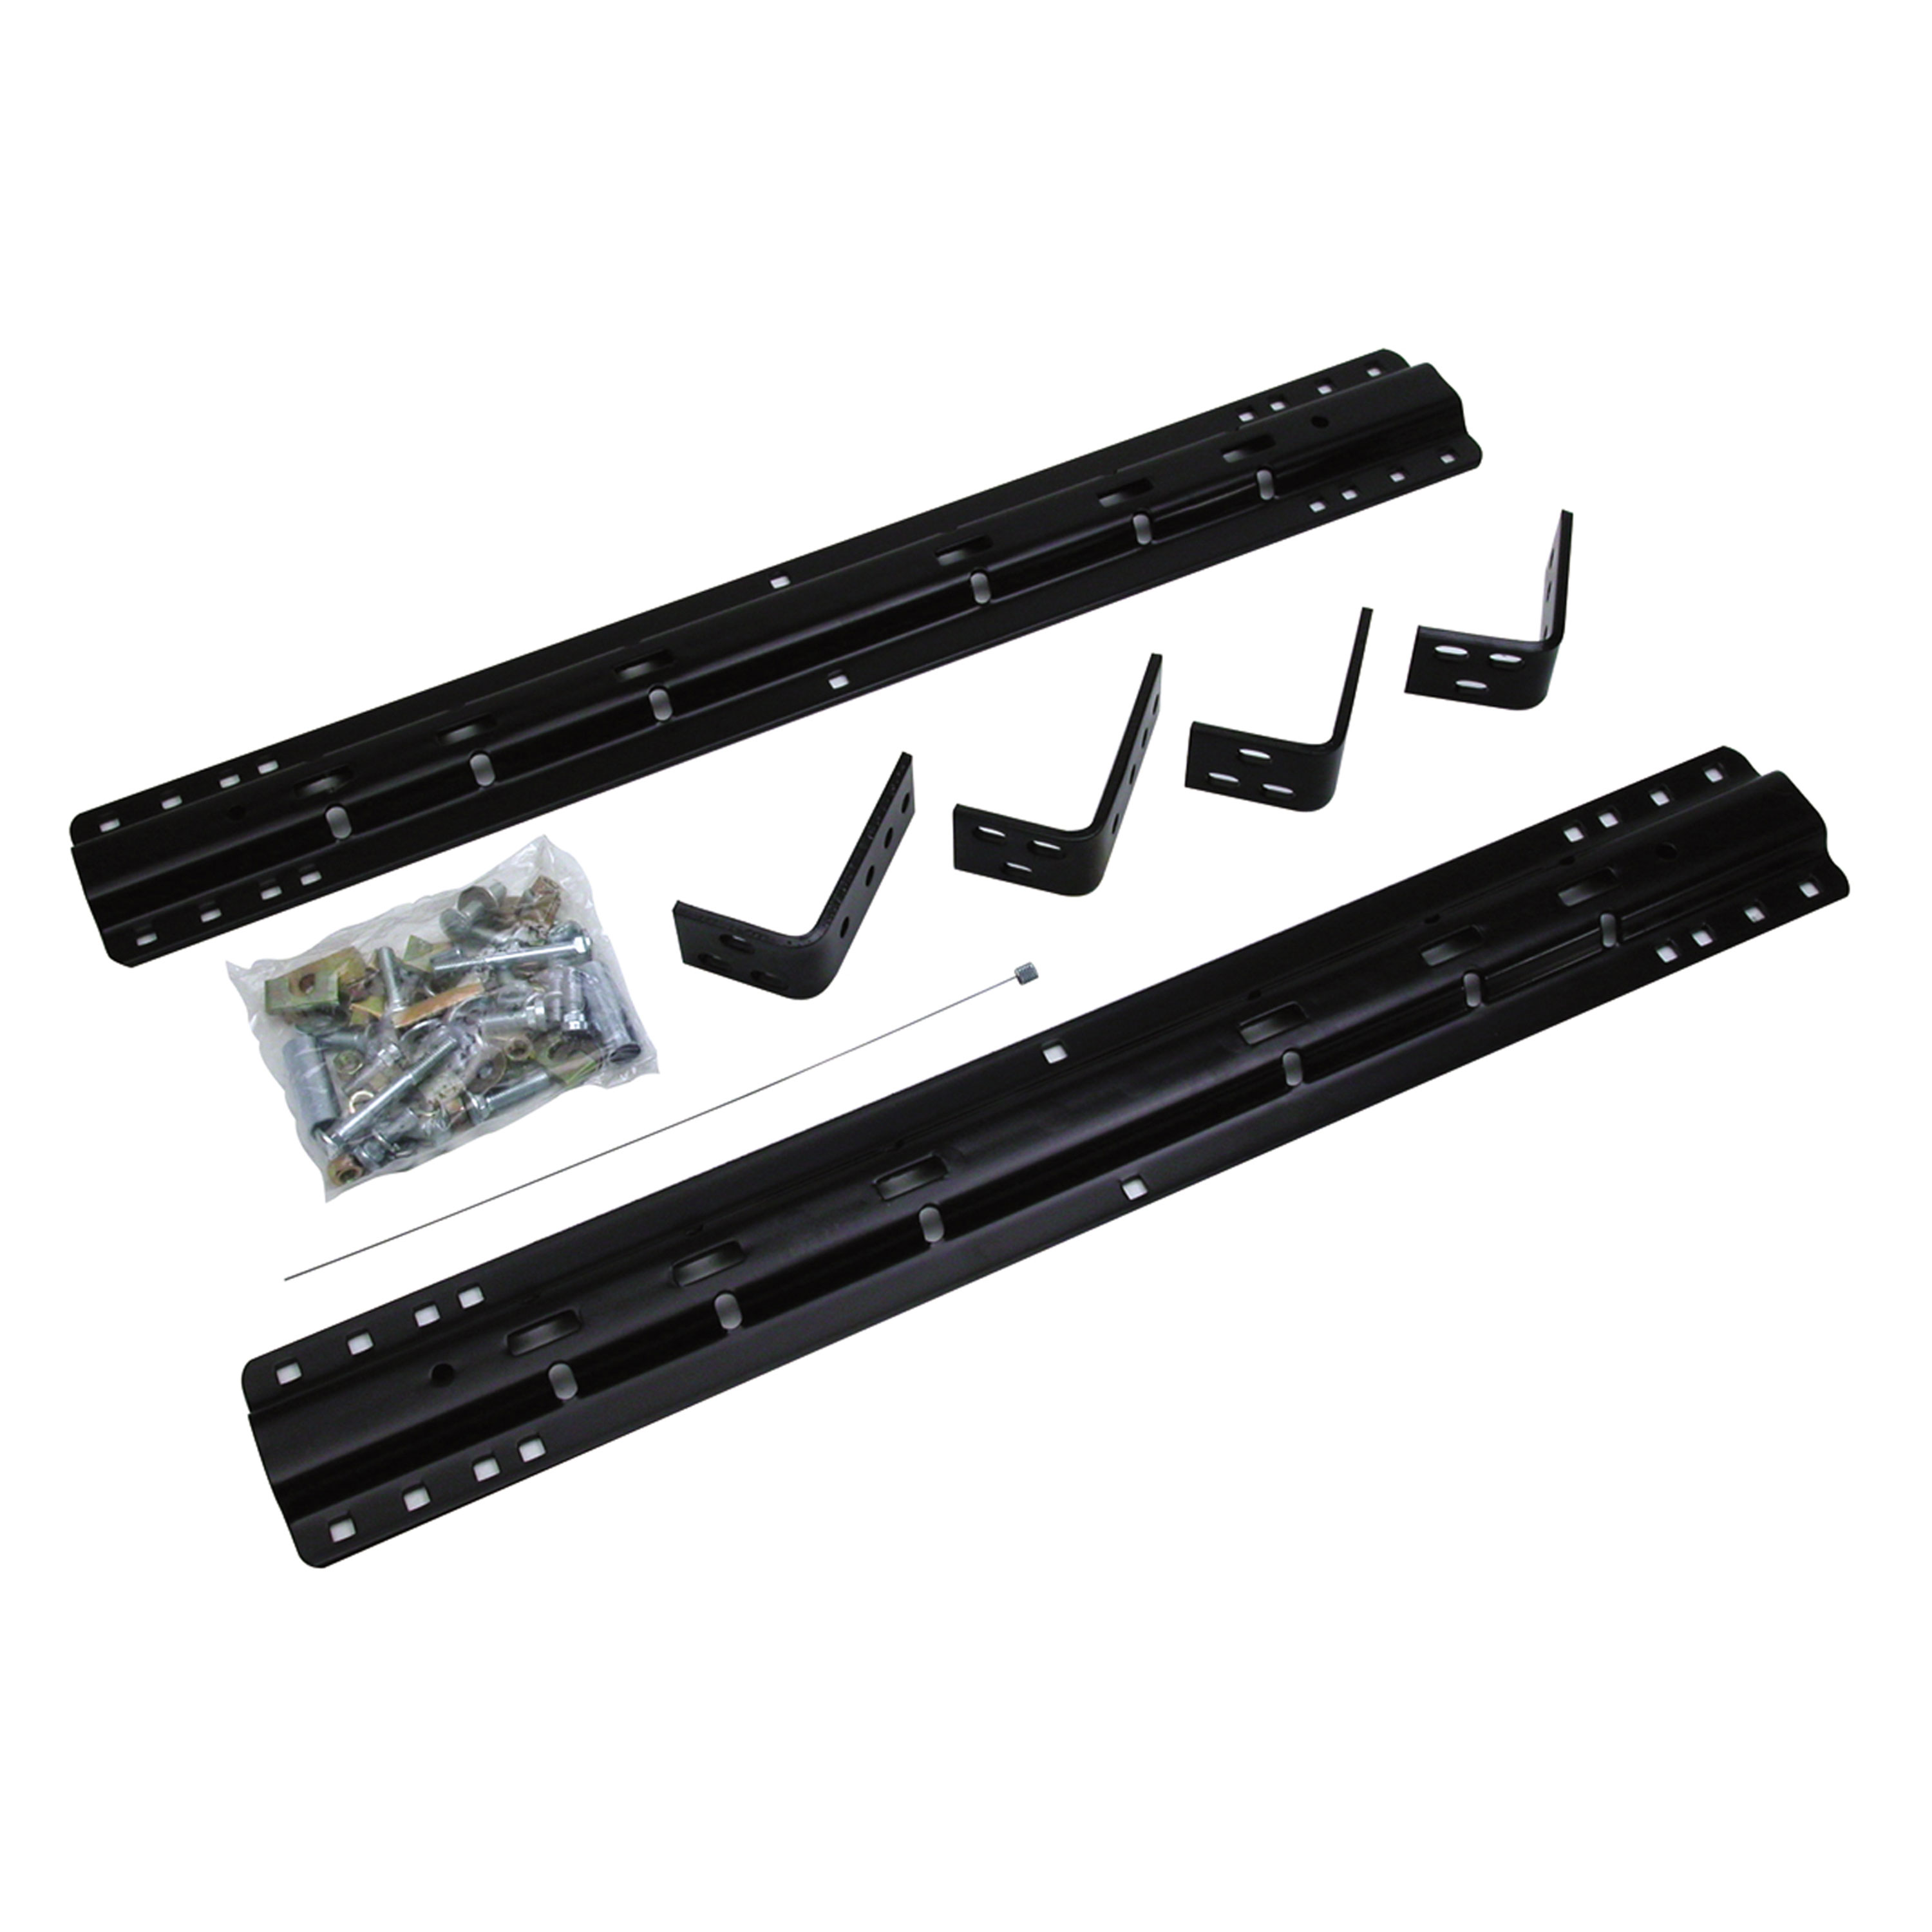 Reese 30035 Fifth Wheel Rail and Installation Kit